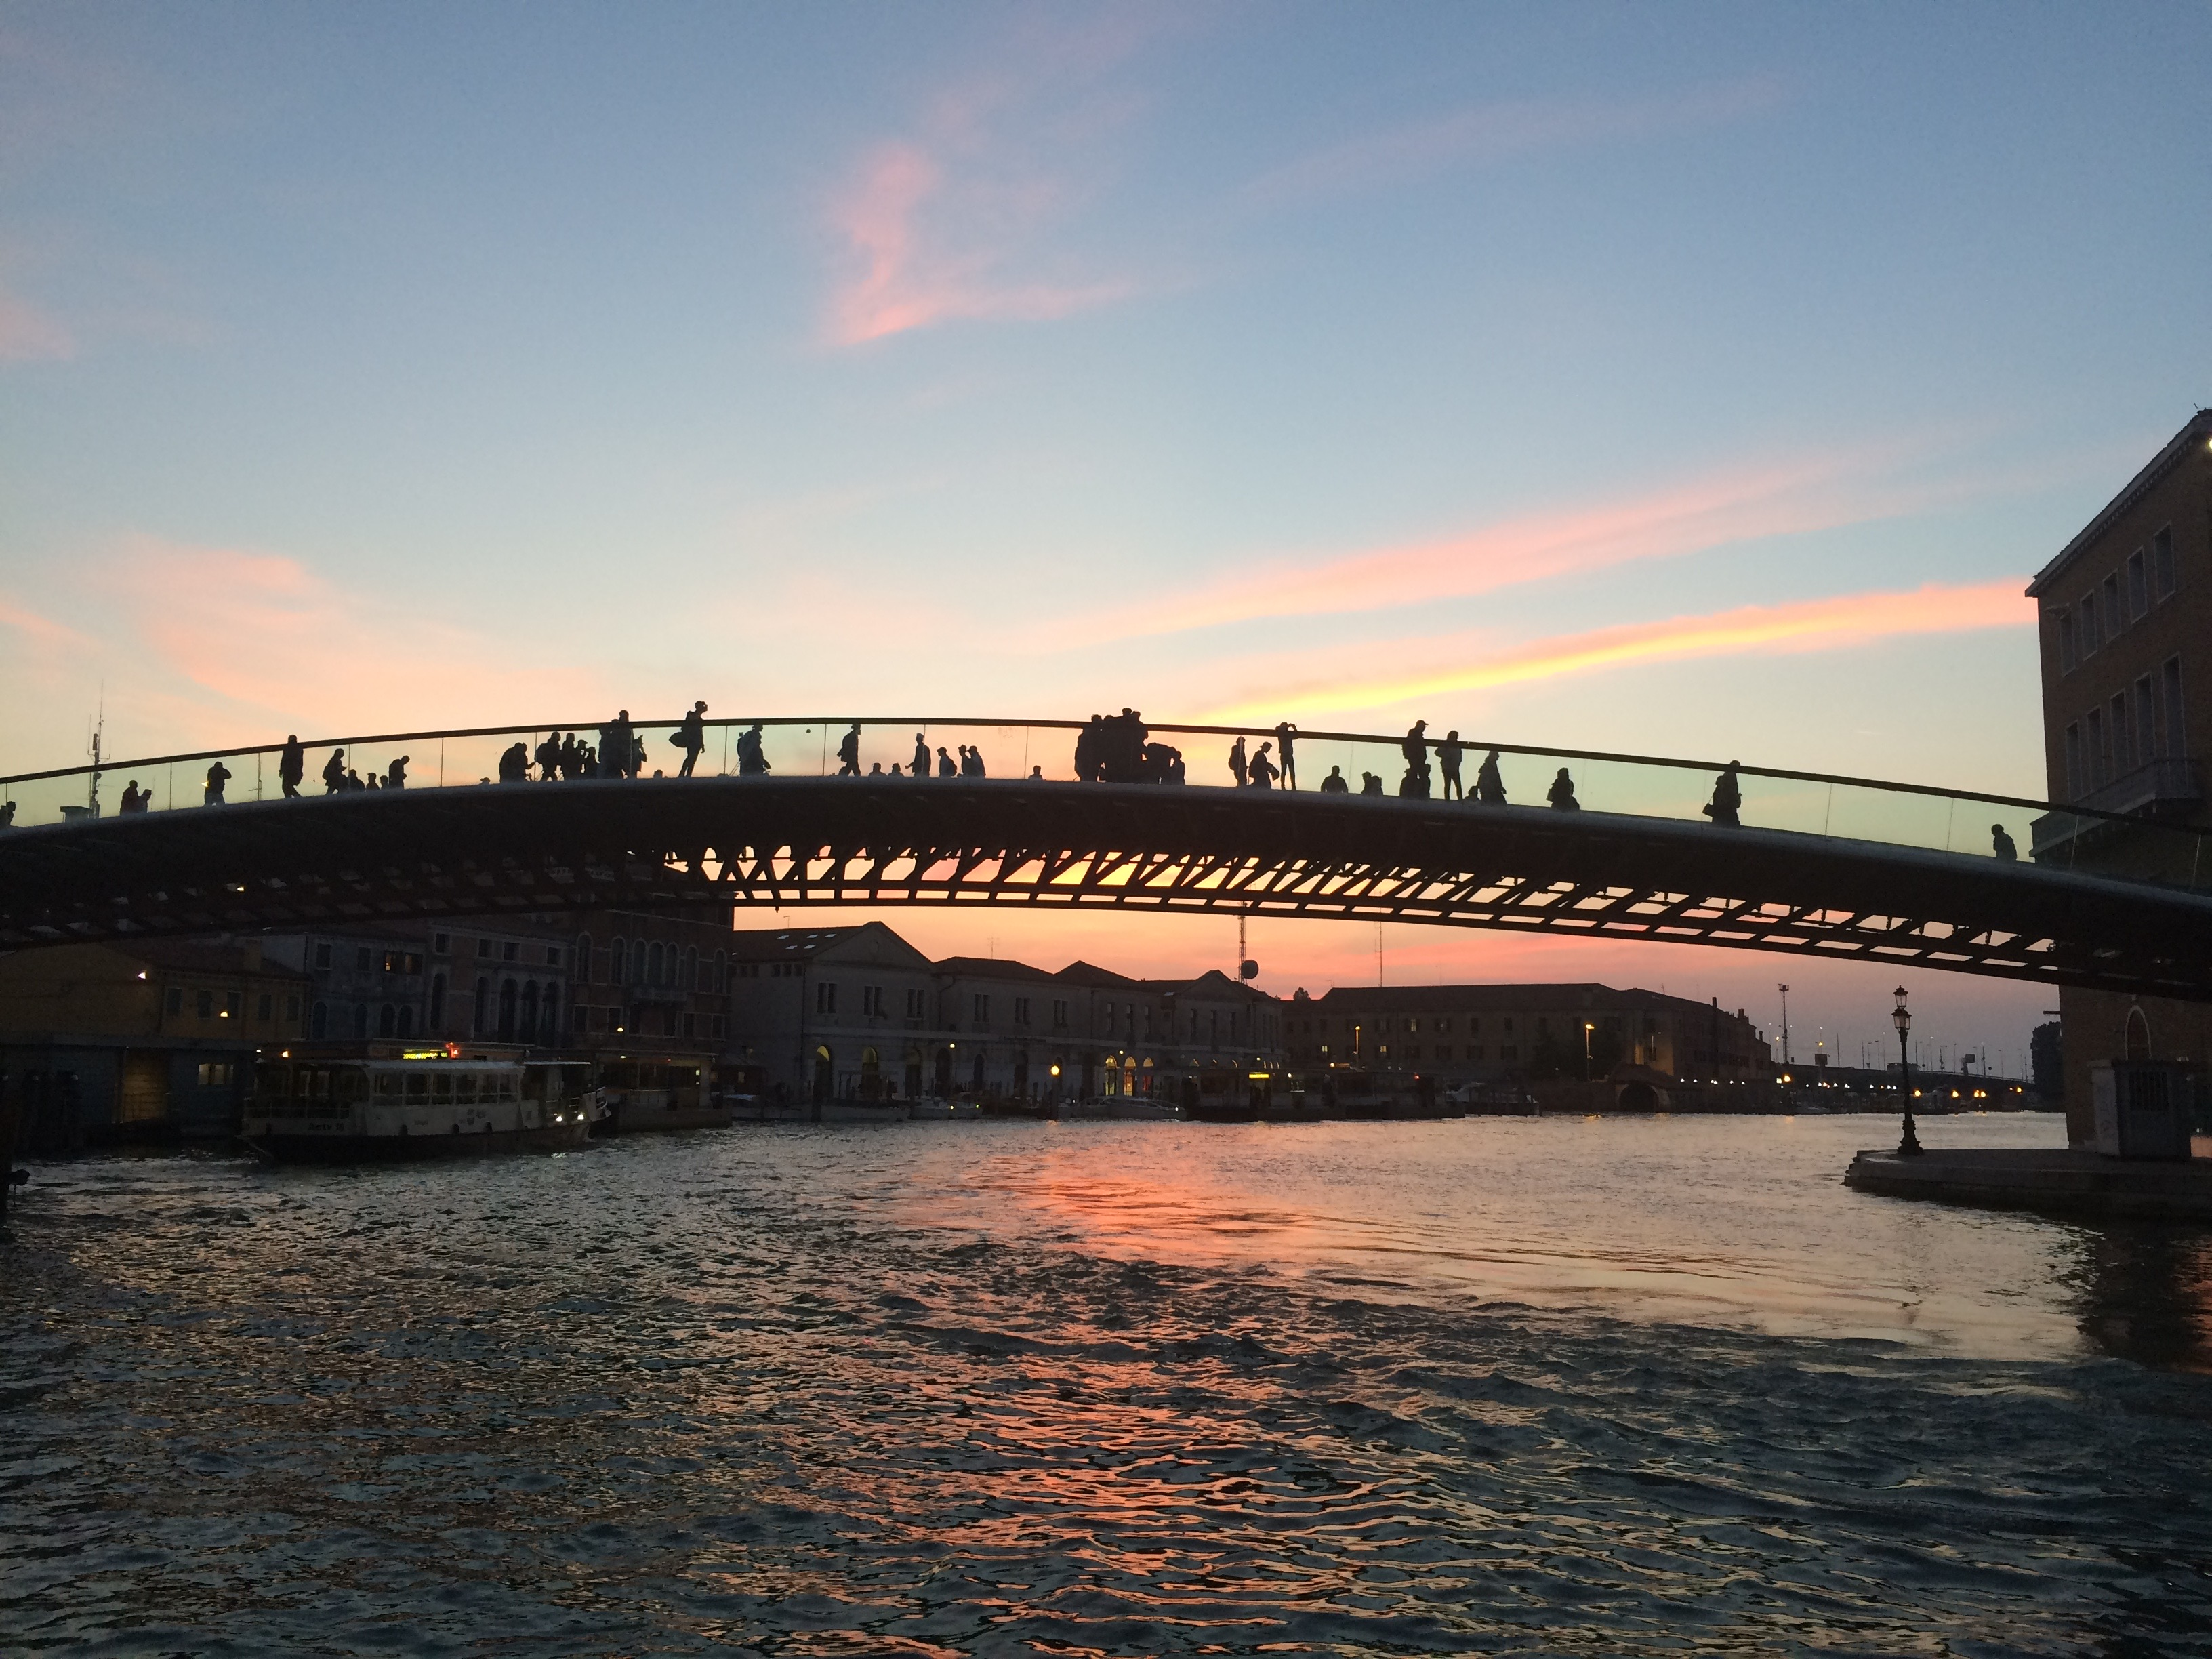 Venice Grand Canal Piazzale Roma sunset figures on bridge